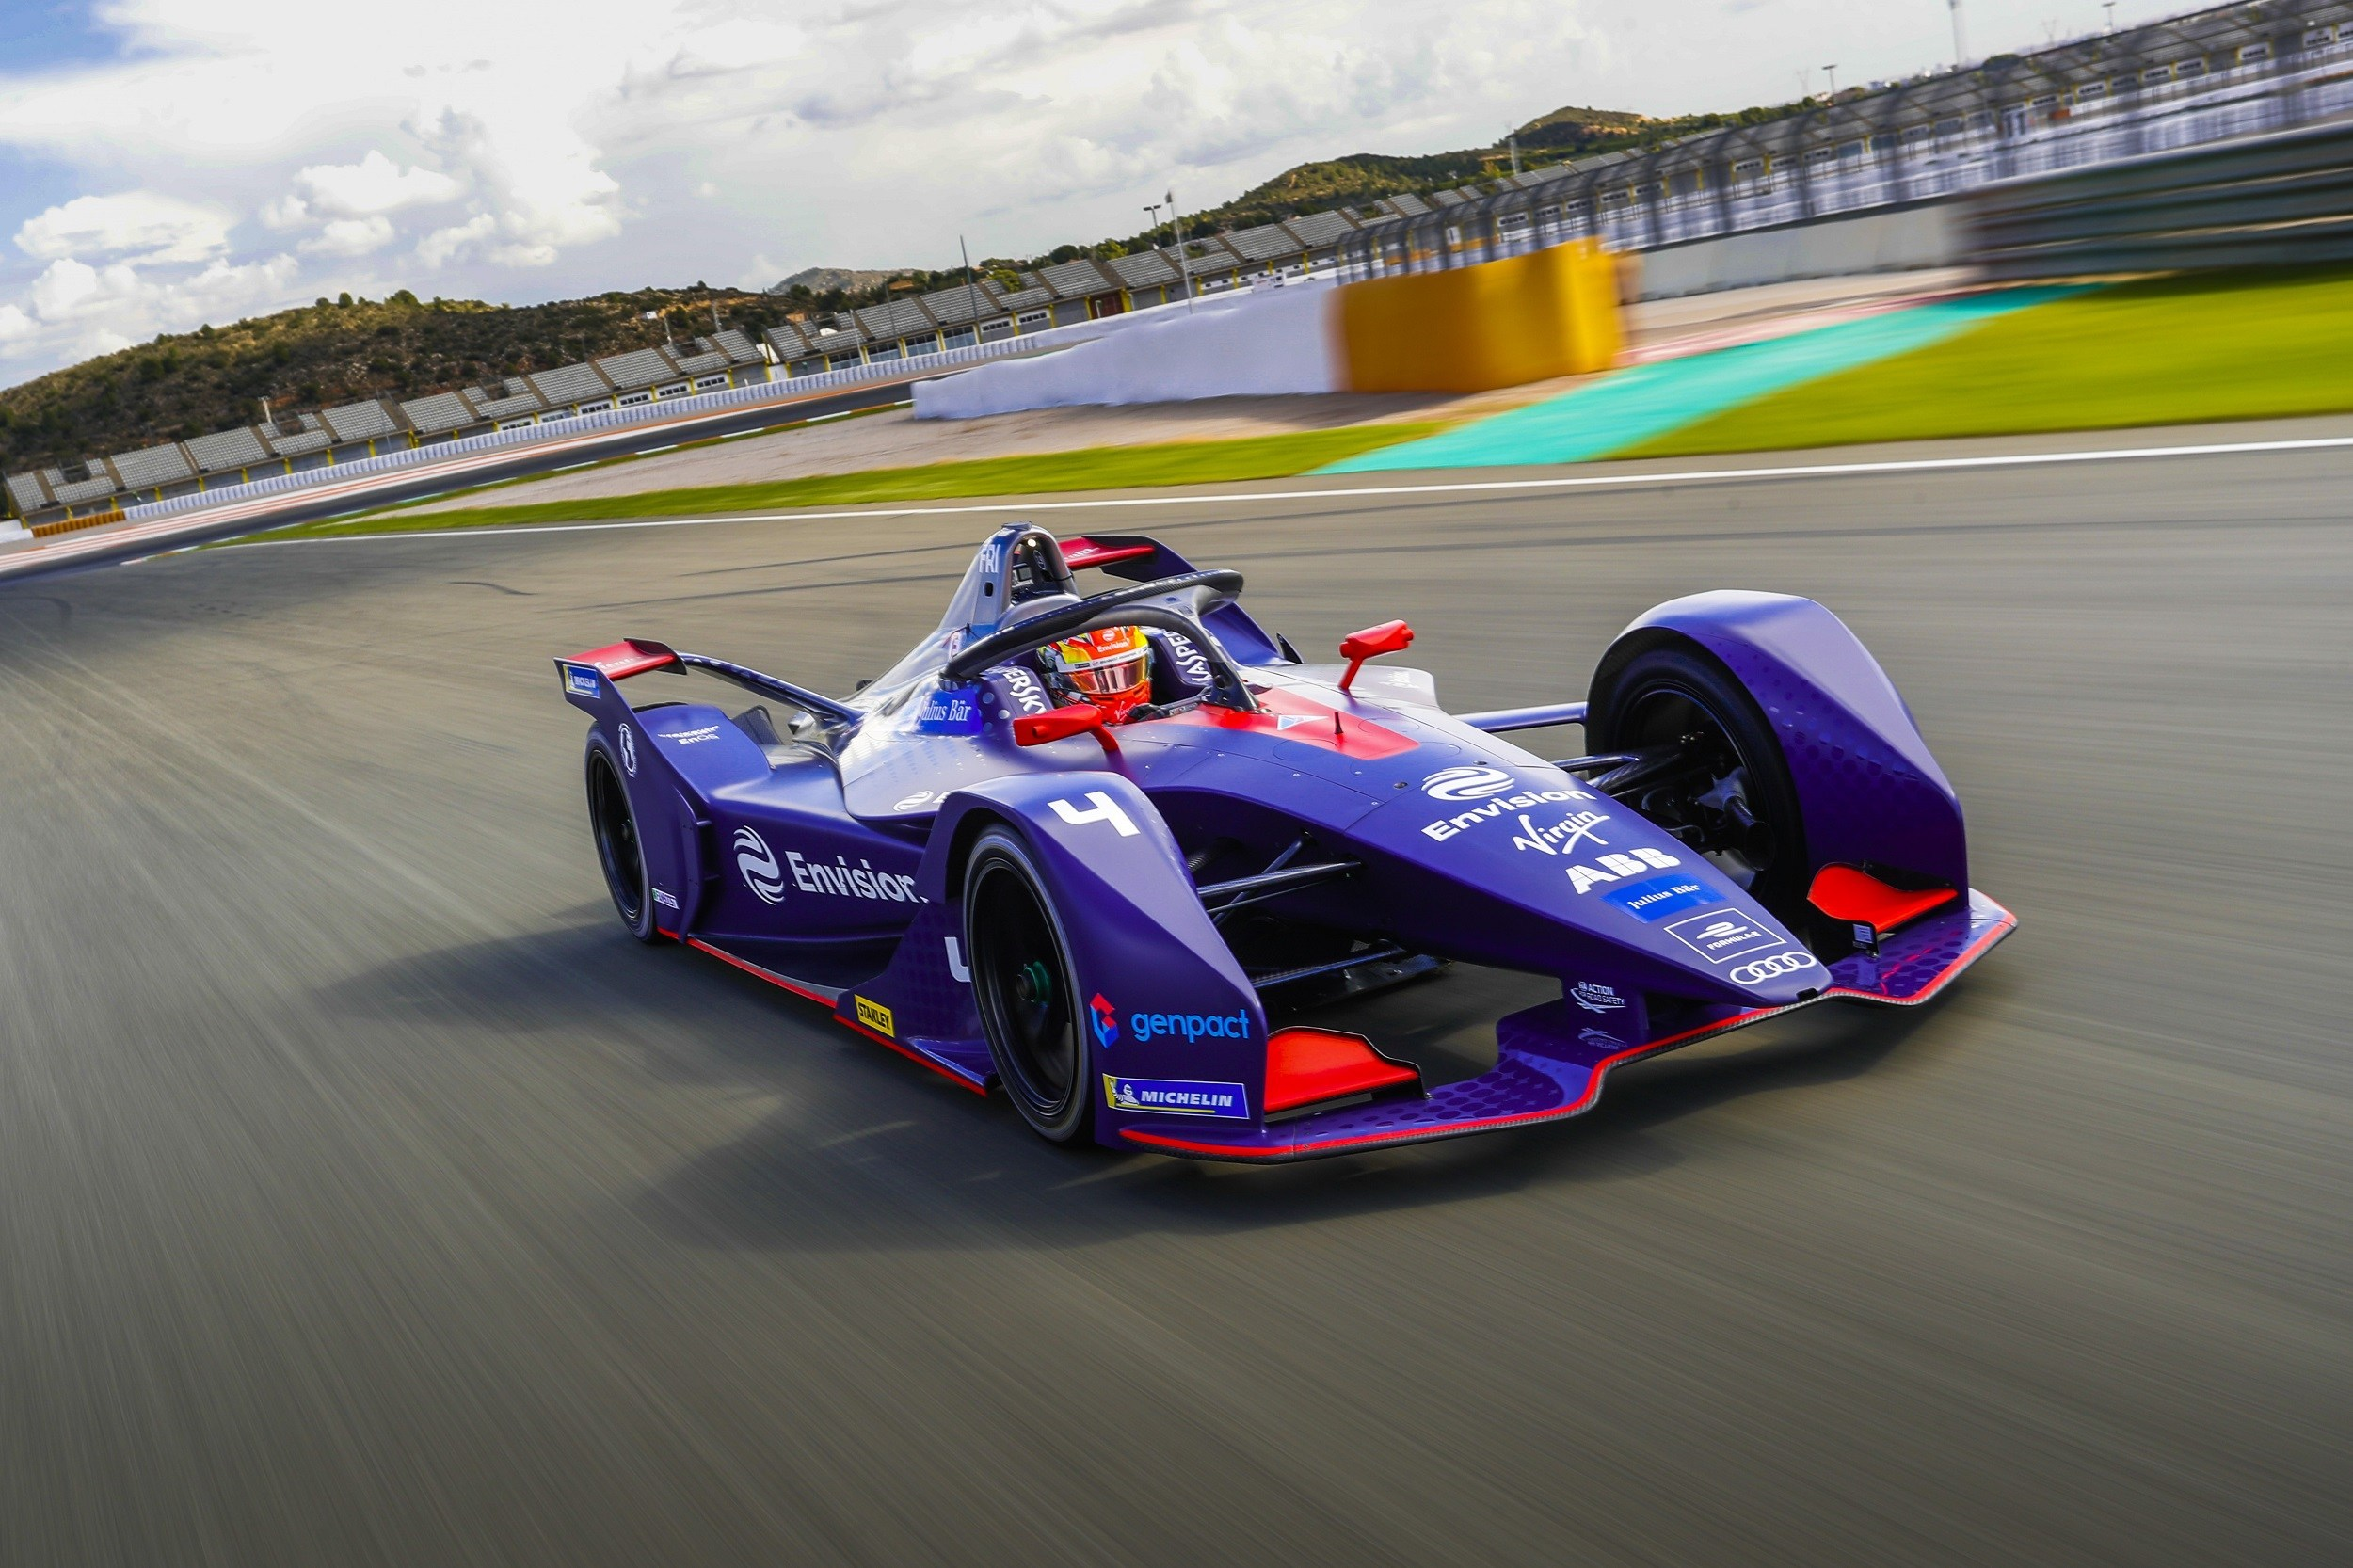 Lessons in analytics learned from Formula E racing